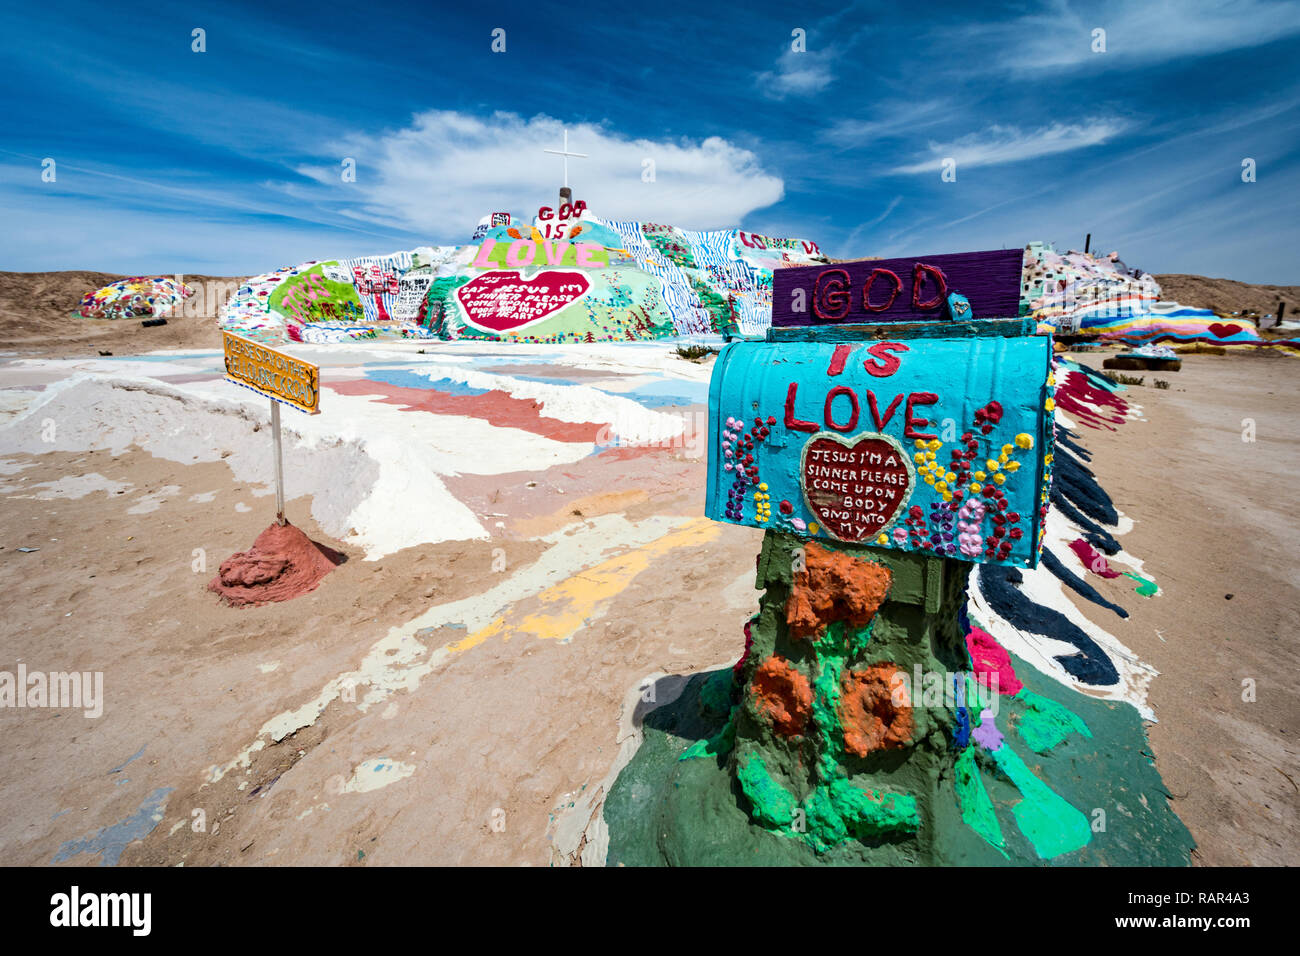 NILAND, CALIFORNIA - AUGUST 21 2018: Leonard Knights painted Salvation Mountain on Beal Road  outside of Niland, California - Stock Image